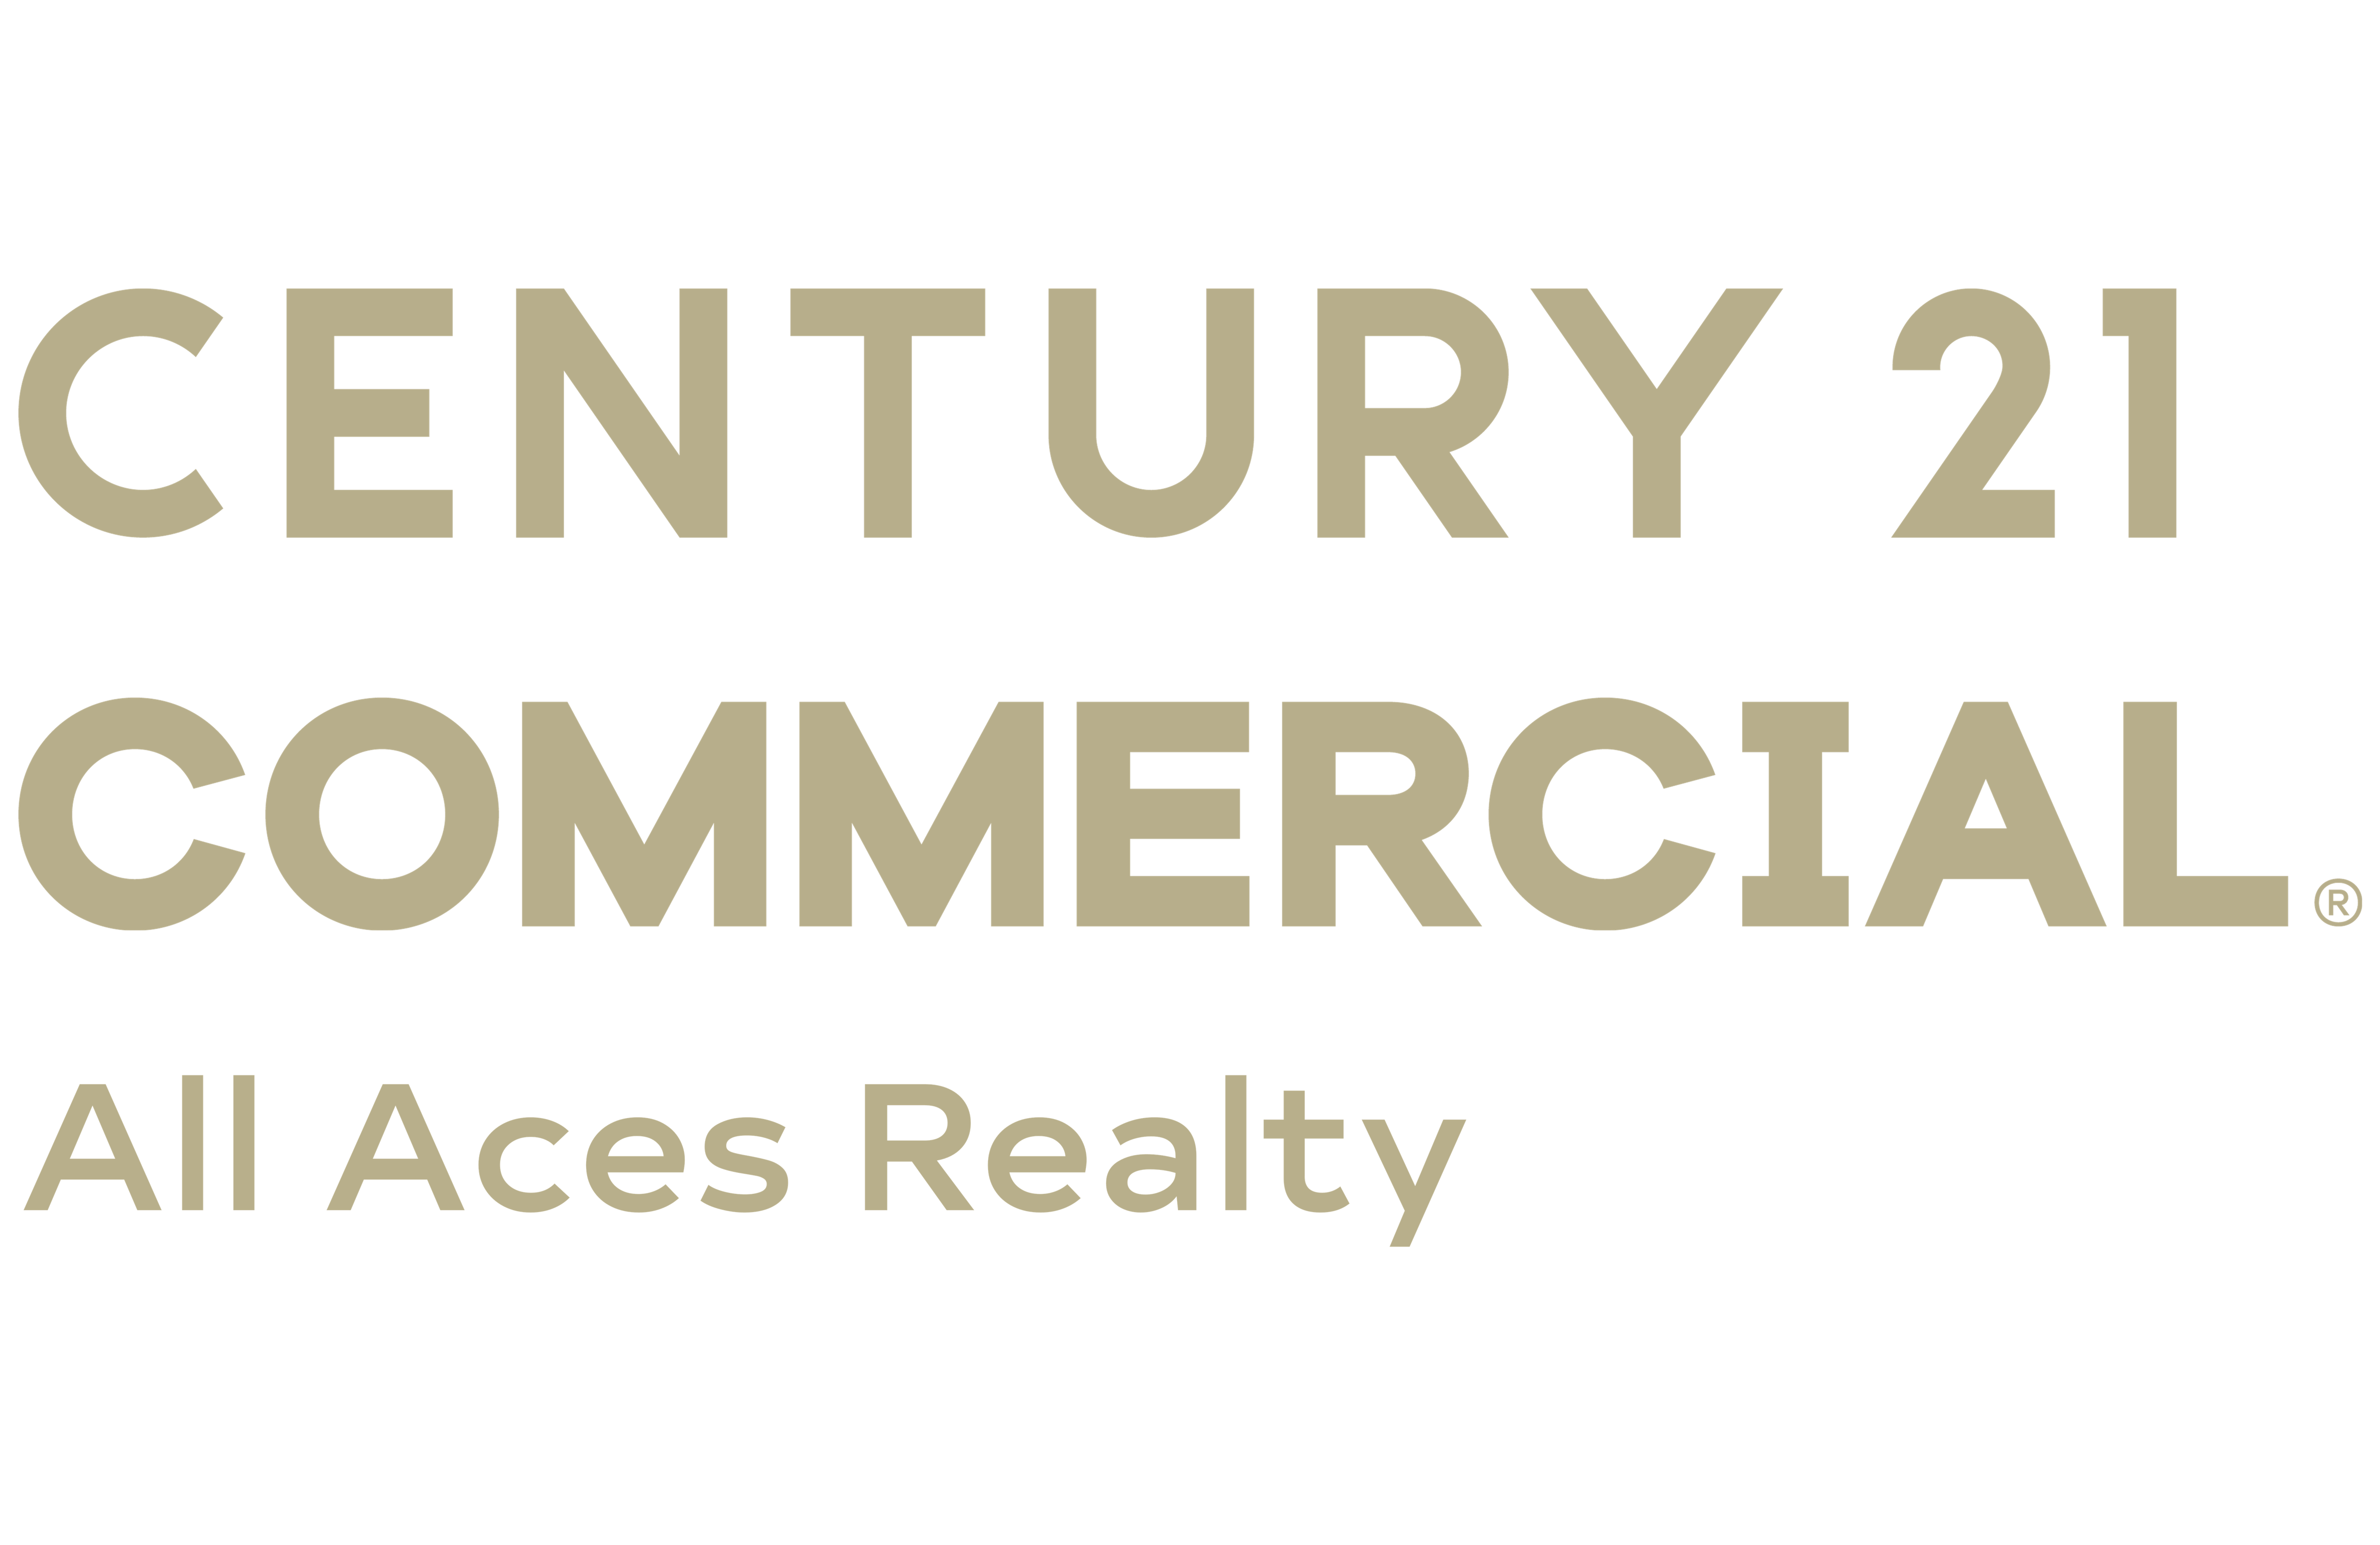 CENTURY 21 All Aces Realty